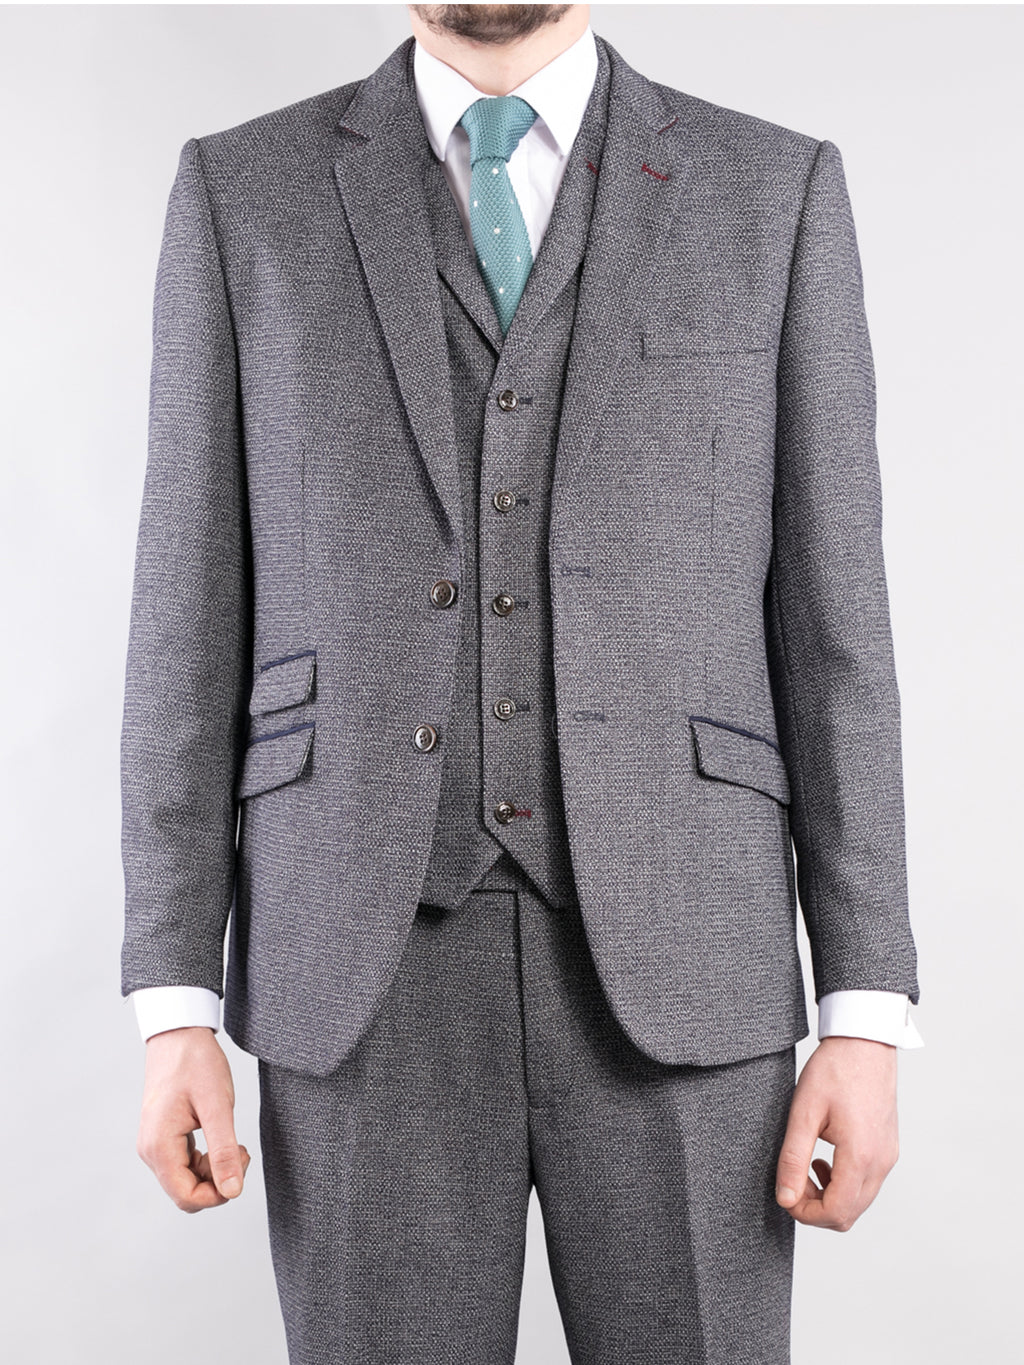 Tappered Fit Grey 3-Piece Tweed Suit